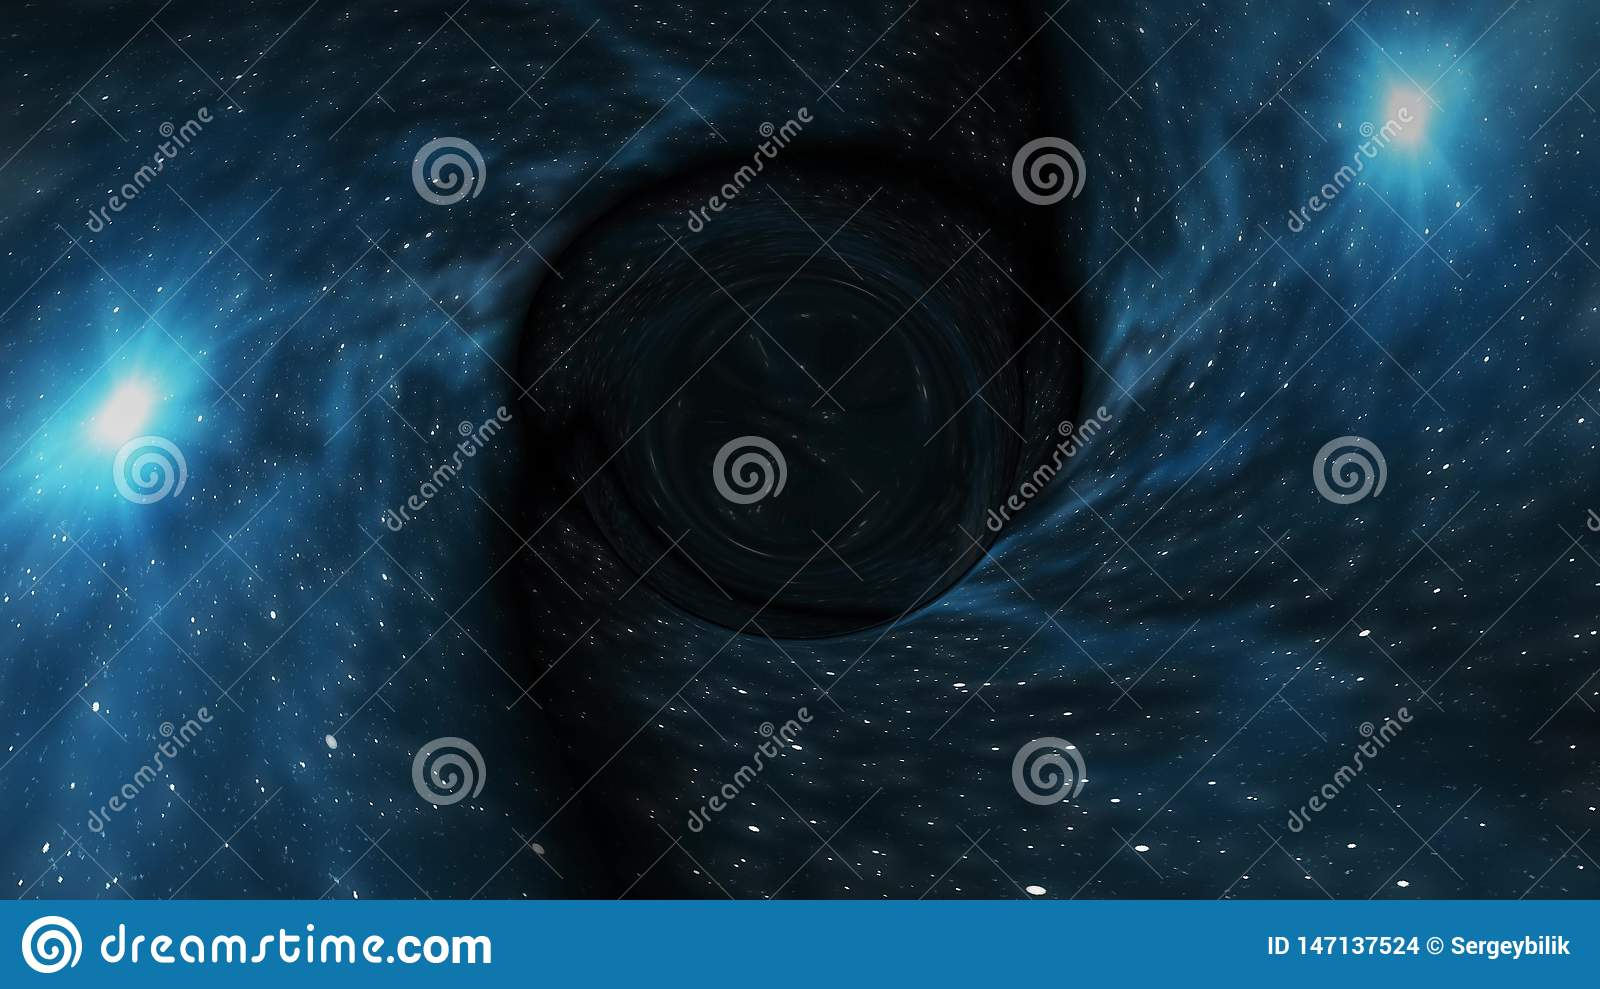 Black Hole Pulls In Star Space Time Funnel Pit Illustration